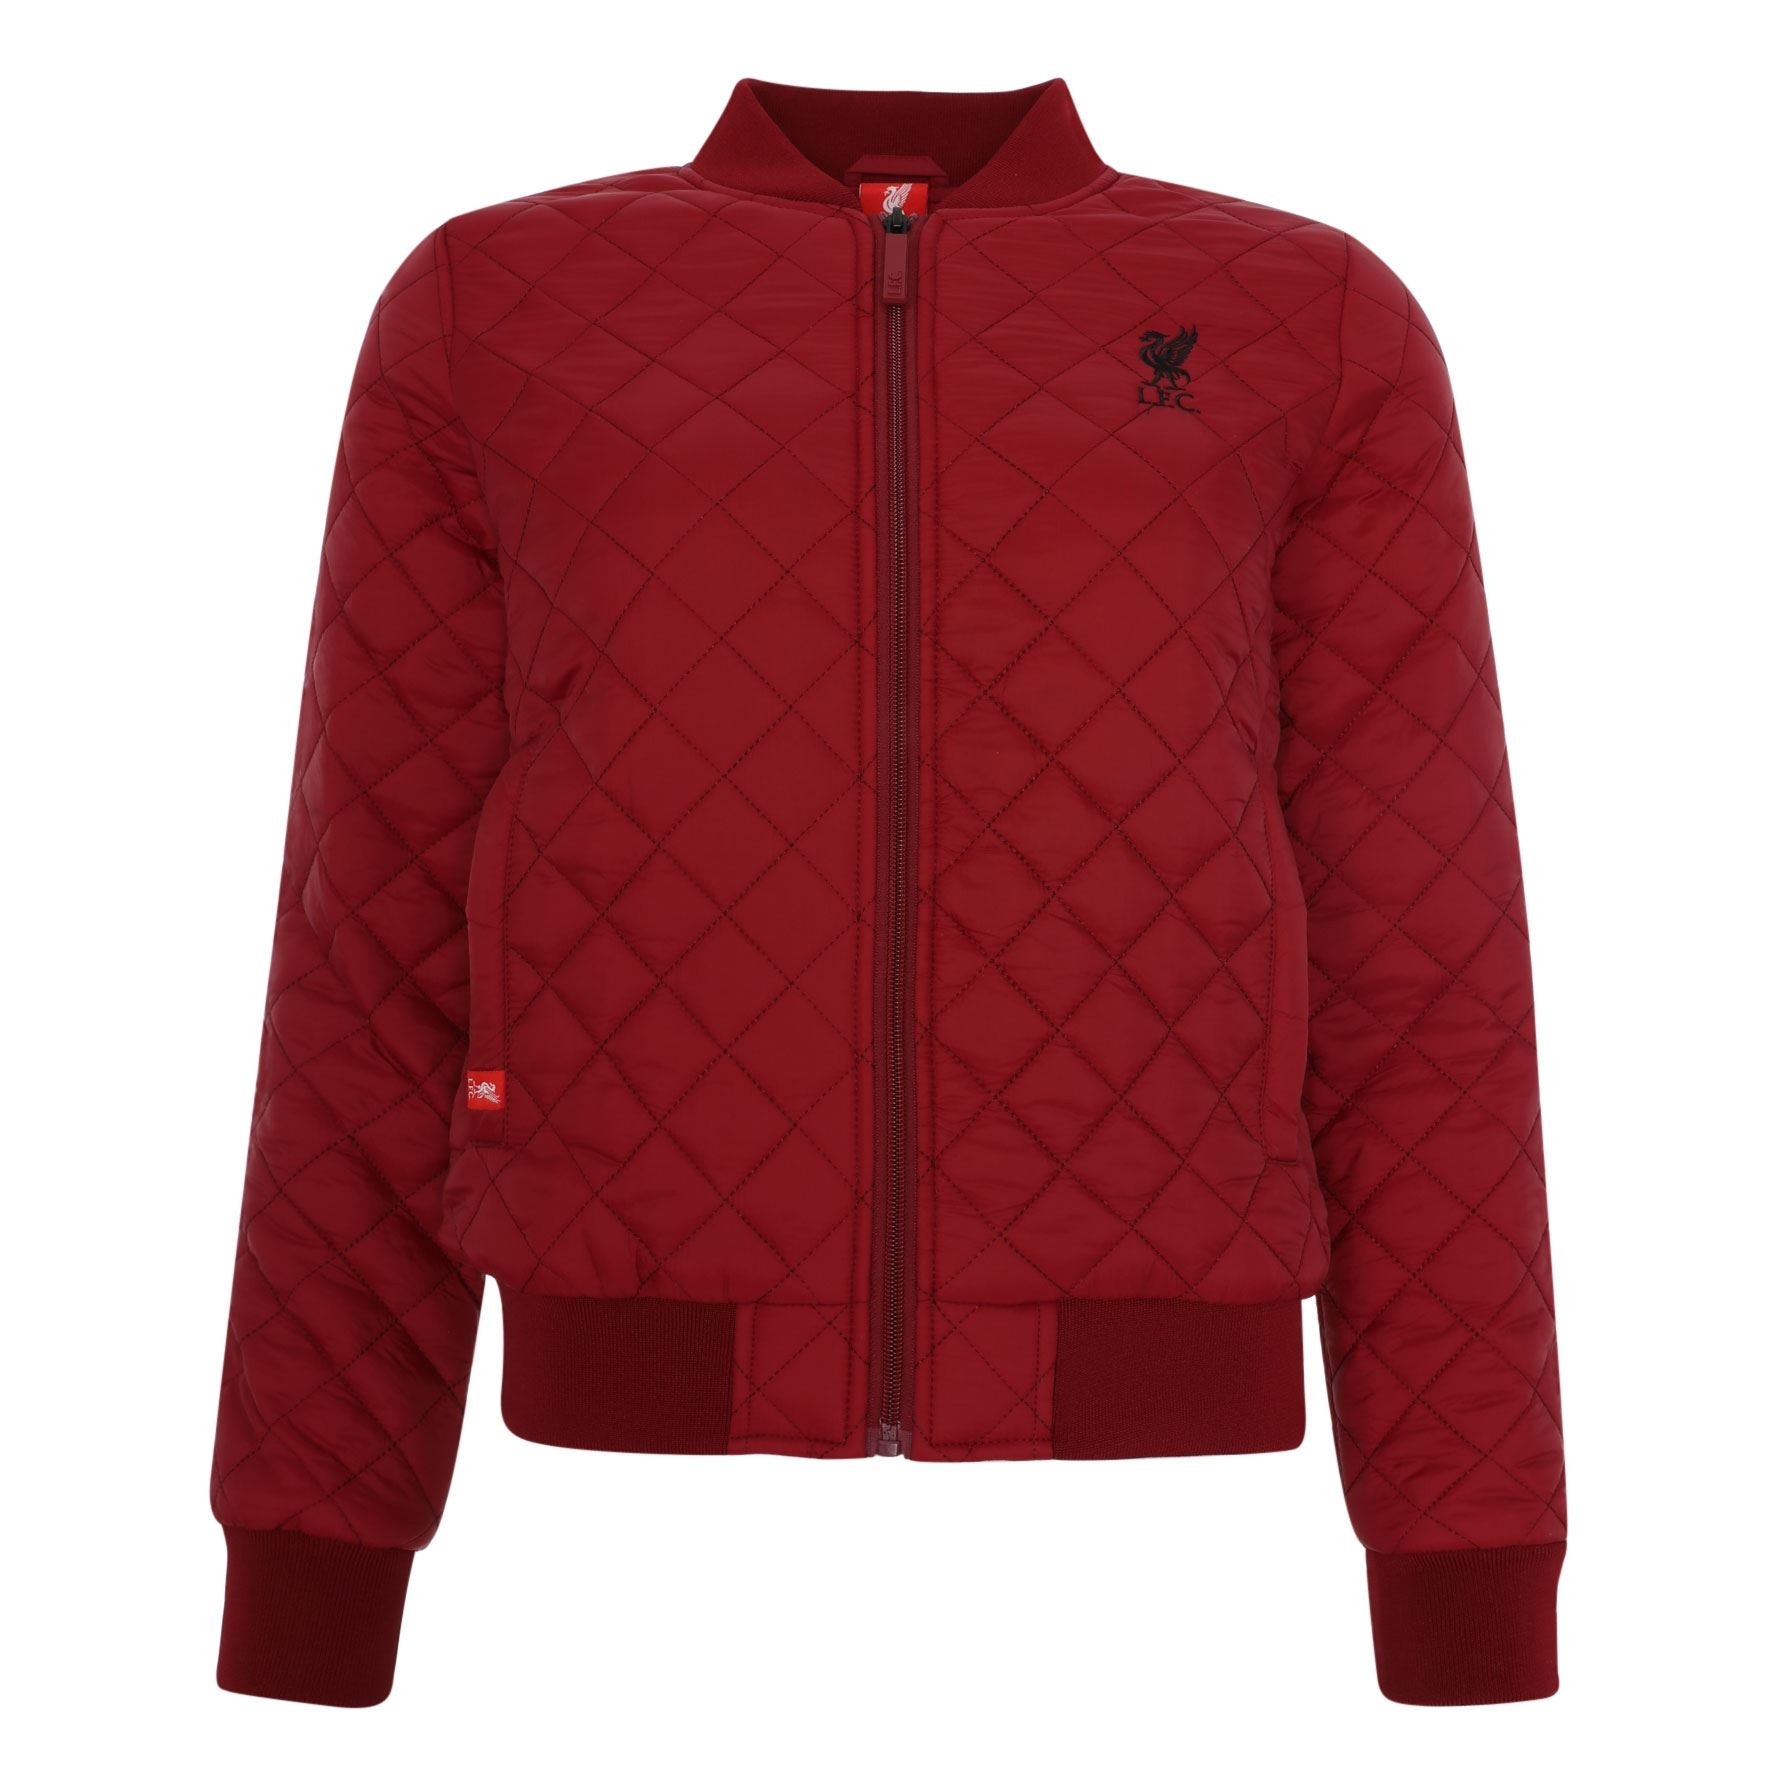 Details about Liverpool FC Red Womens Soccer Quilted Bomber Jacket AW 18 19 LFC  Official 7795862331